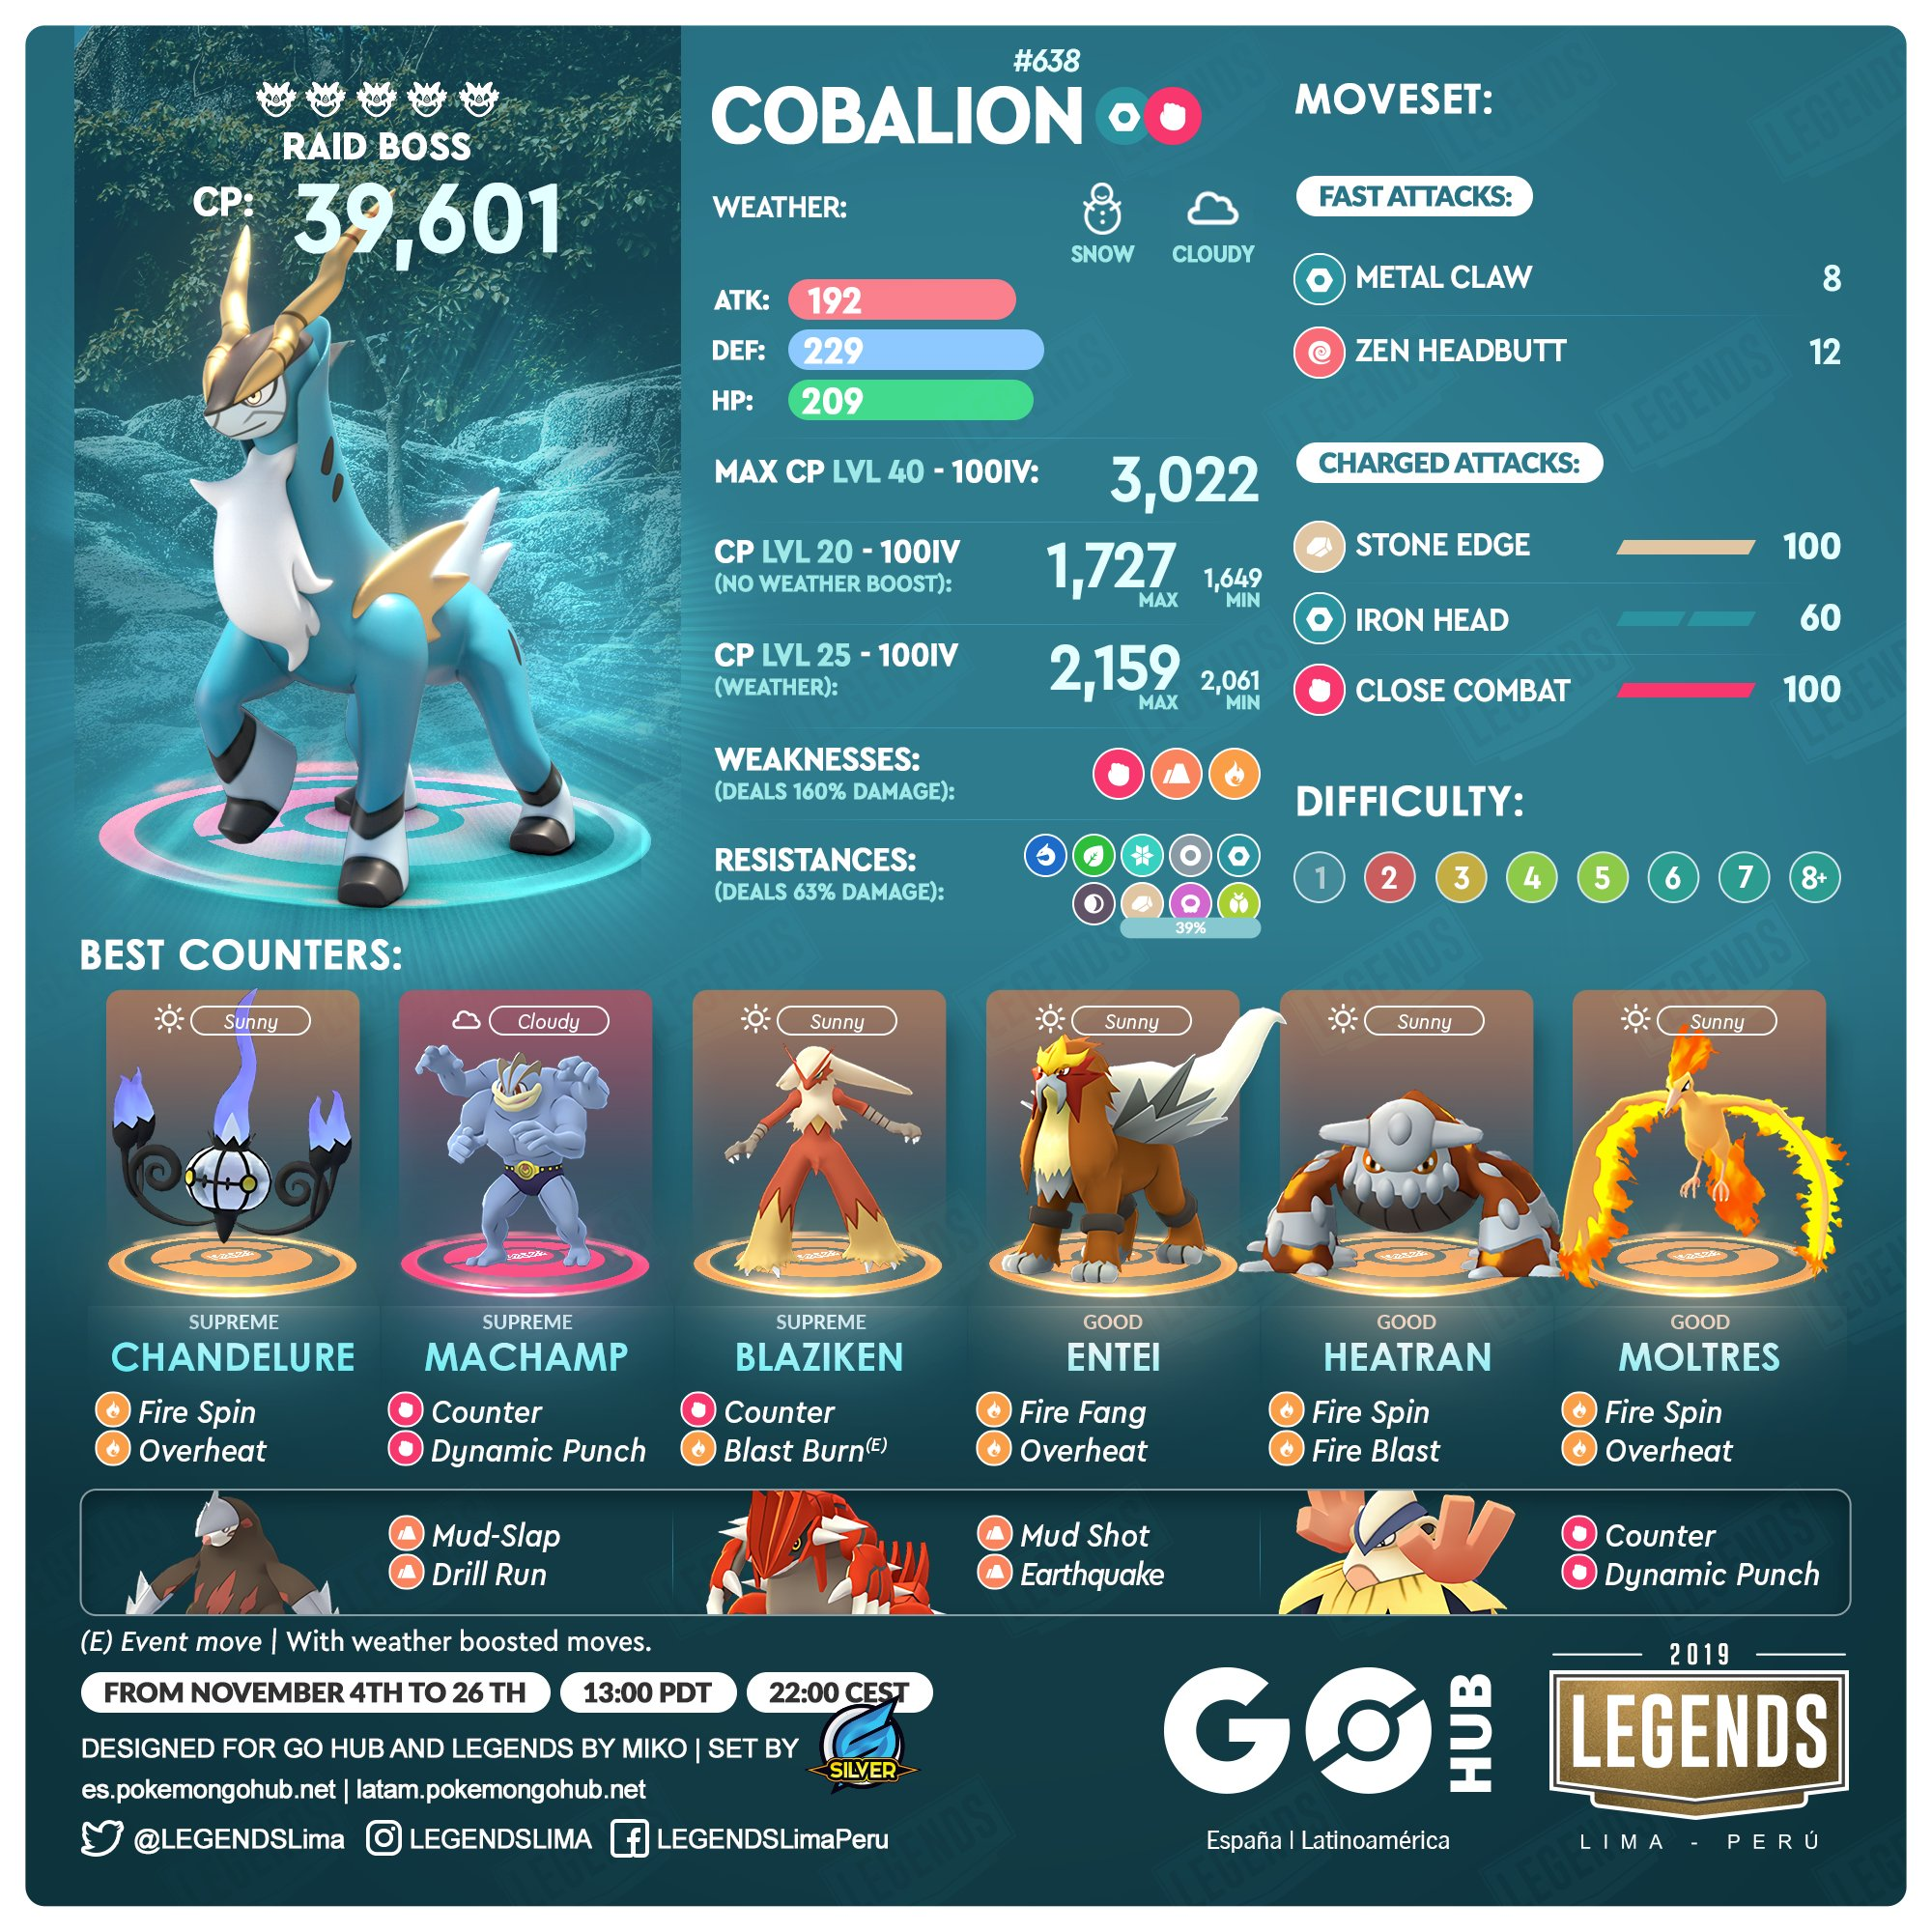 "LEGENDS on Twitter: ""⚔️ #Cobalion, the Iron Will Pokémon, makes its  legendary debut in Pokémon GO! ⚔️ From Monday, November 4th, 2019, at 1  p.m. to Tuesday, November 26th, 2019 #PokemonGO… https://t.co/nMa0q1tkEH"""